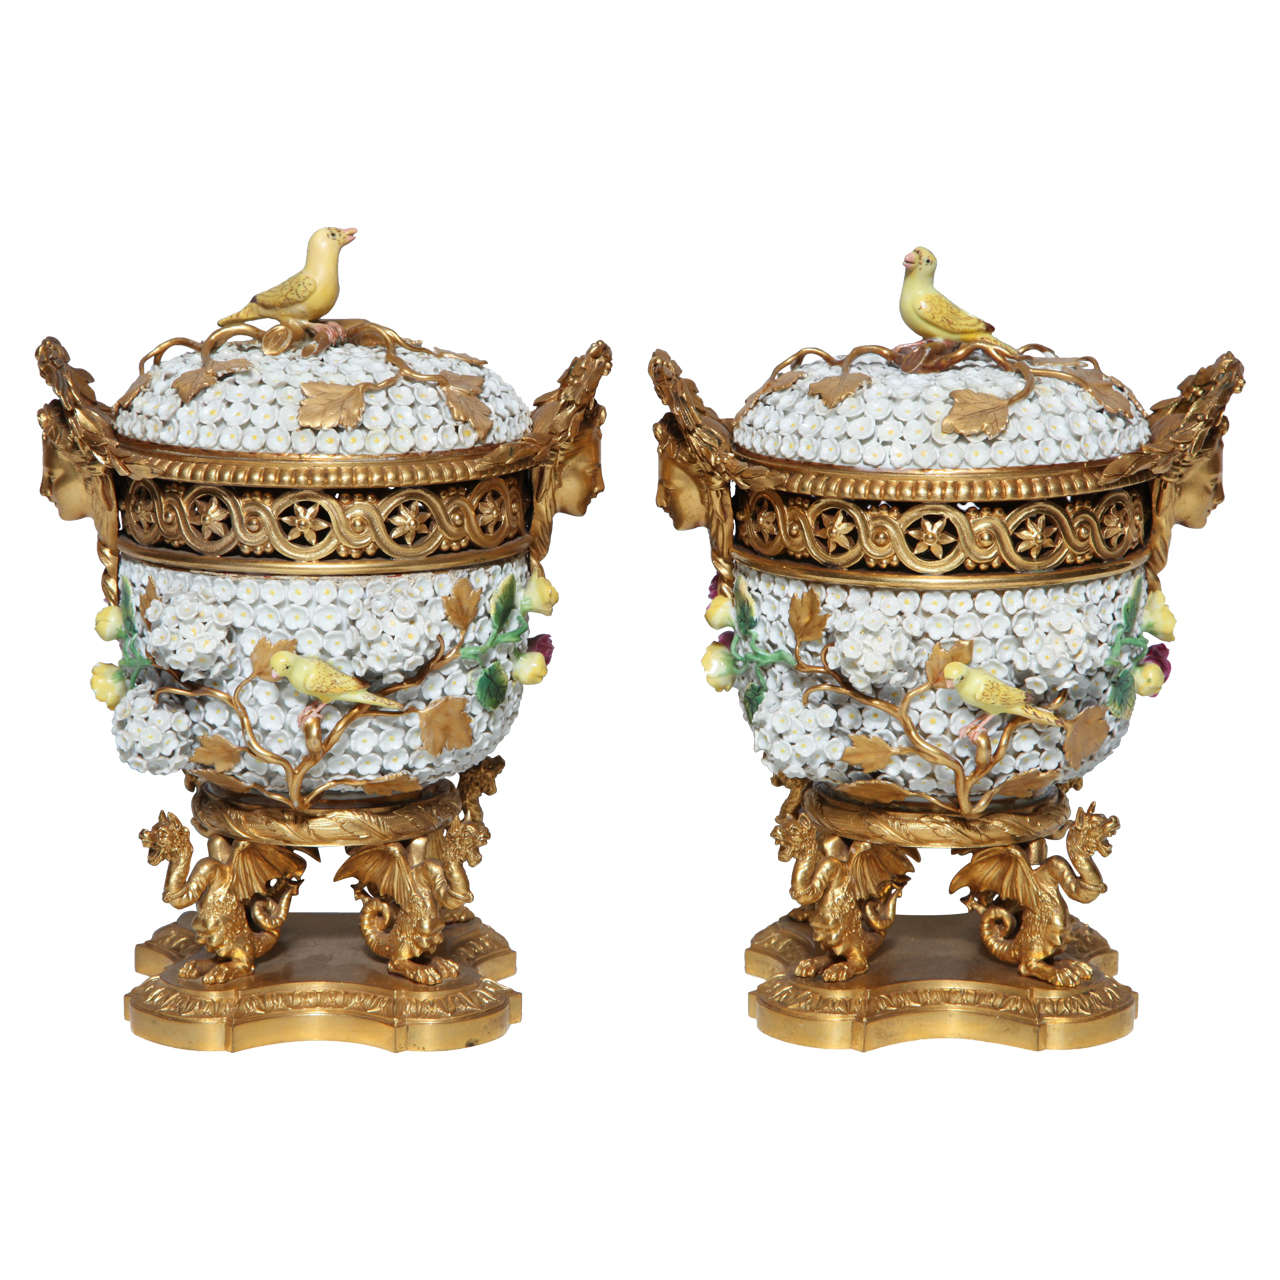 Pair of Meissen Schneeballen and Intricately Ormolu-Mounted Potpourri Vases For Sale